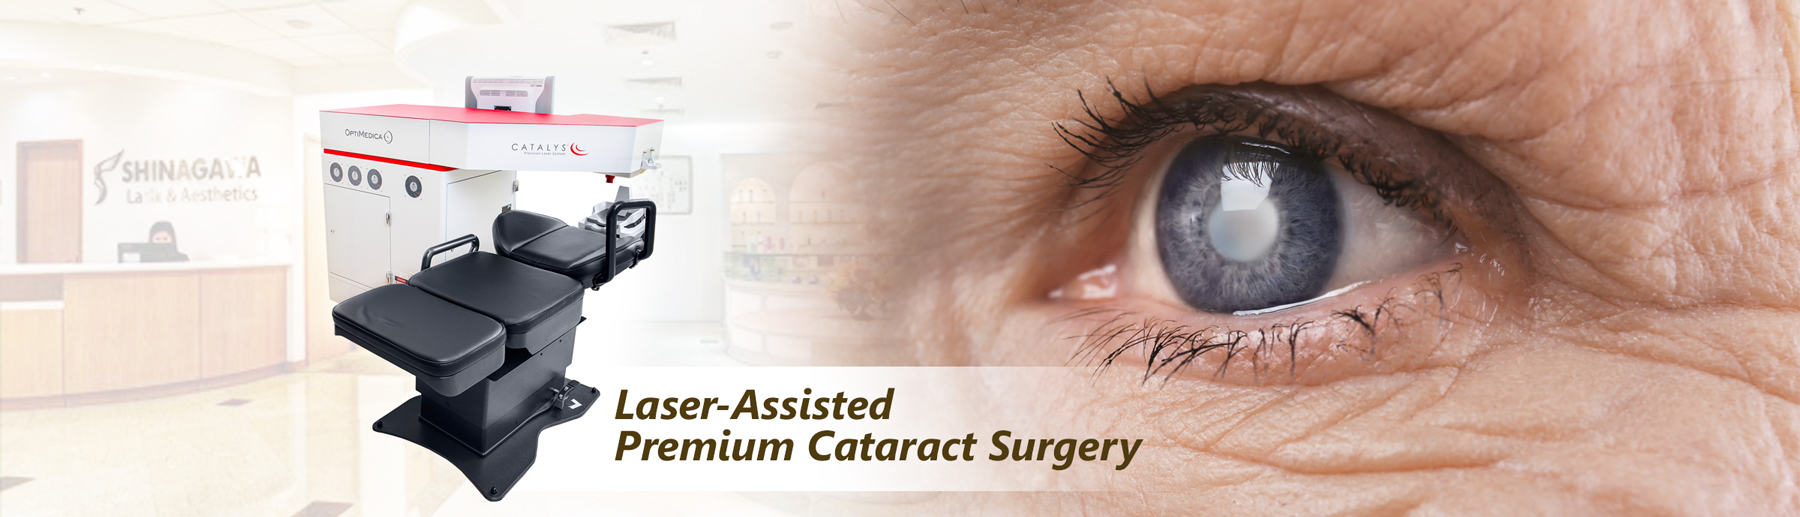 Lase-Assisted Premium Cataract Surgery